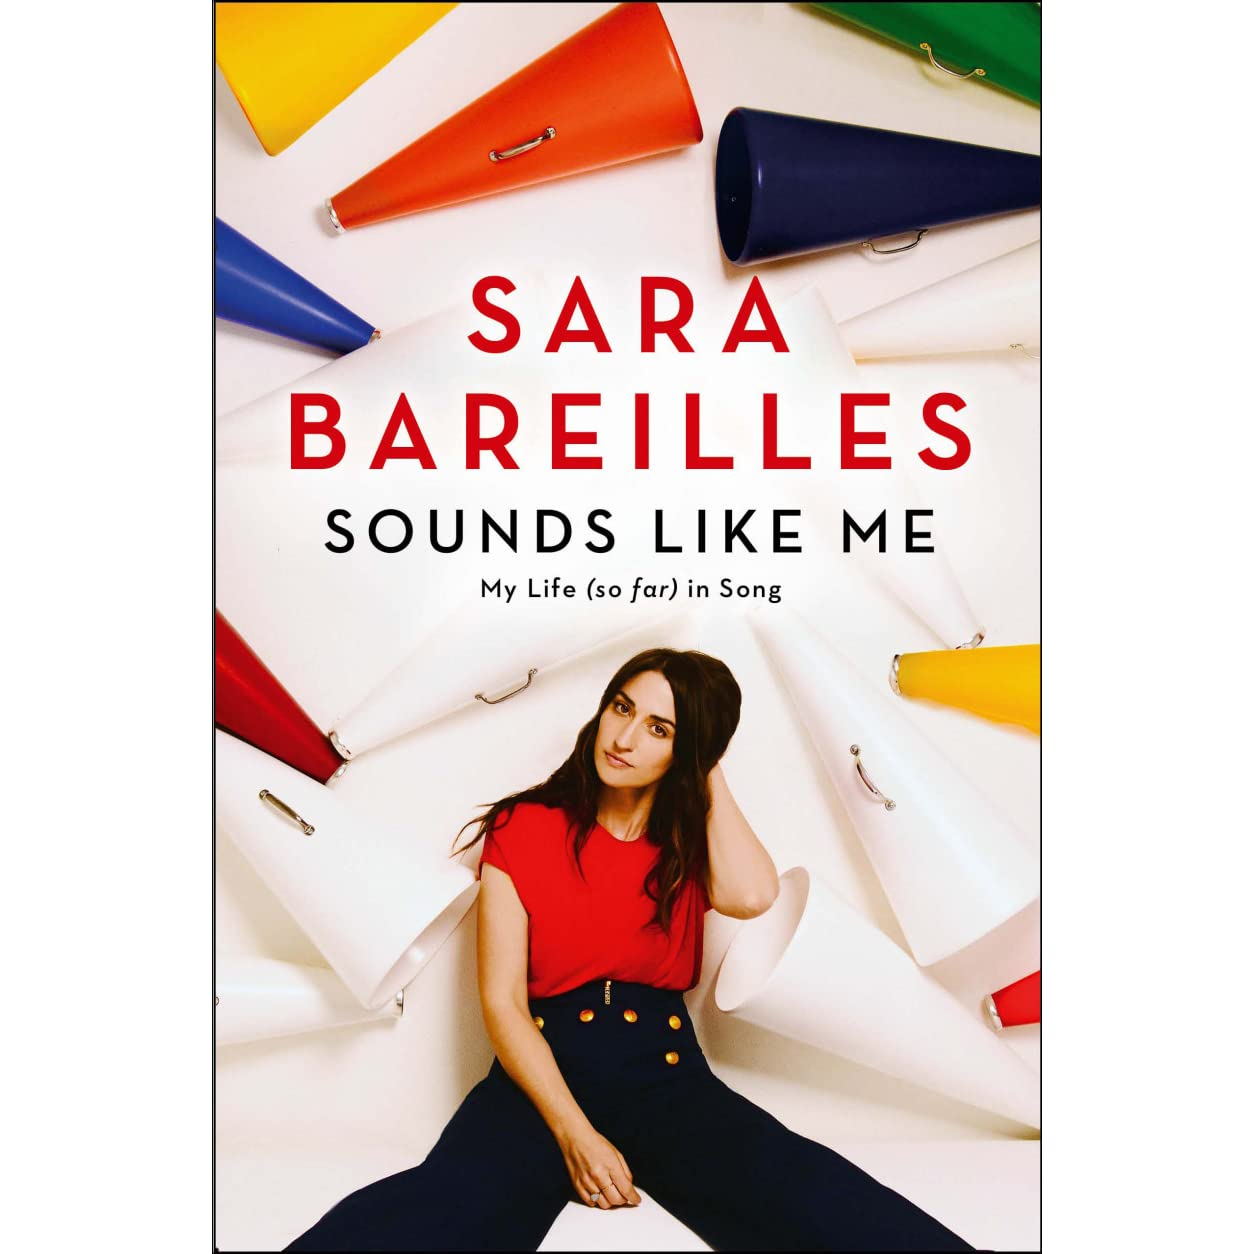 sounds like me my life so far in song by sara bareilles sounds like me my life so far in song by sara bareilles reviews discussion bookclubs lists